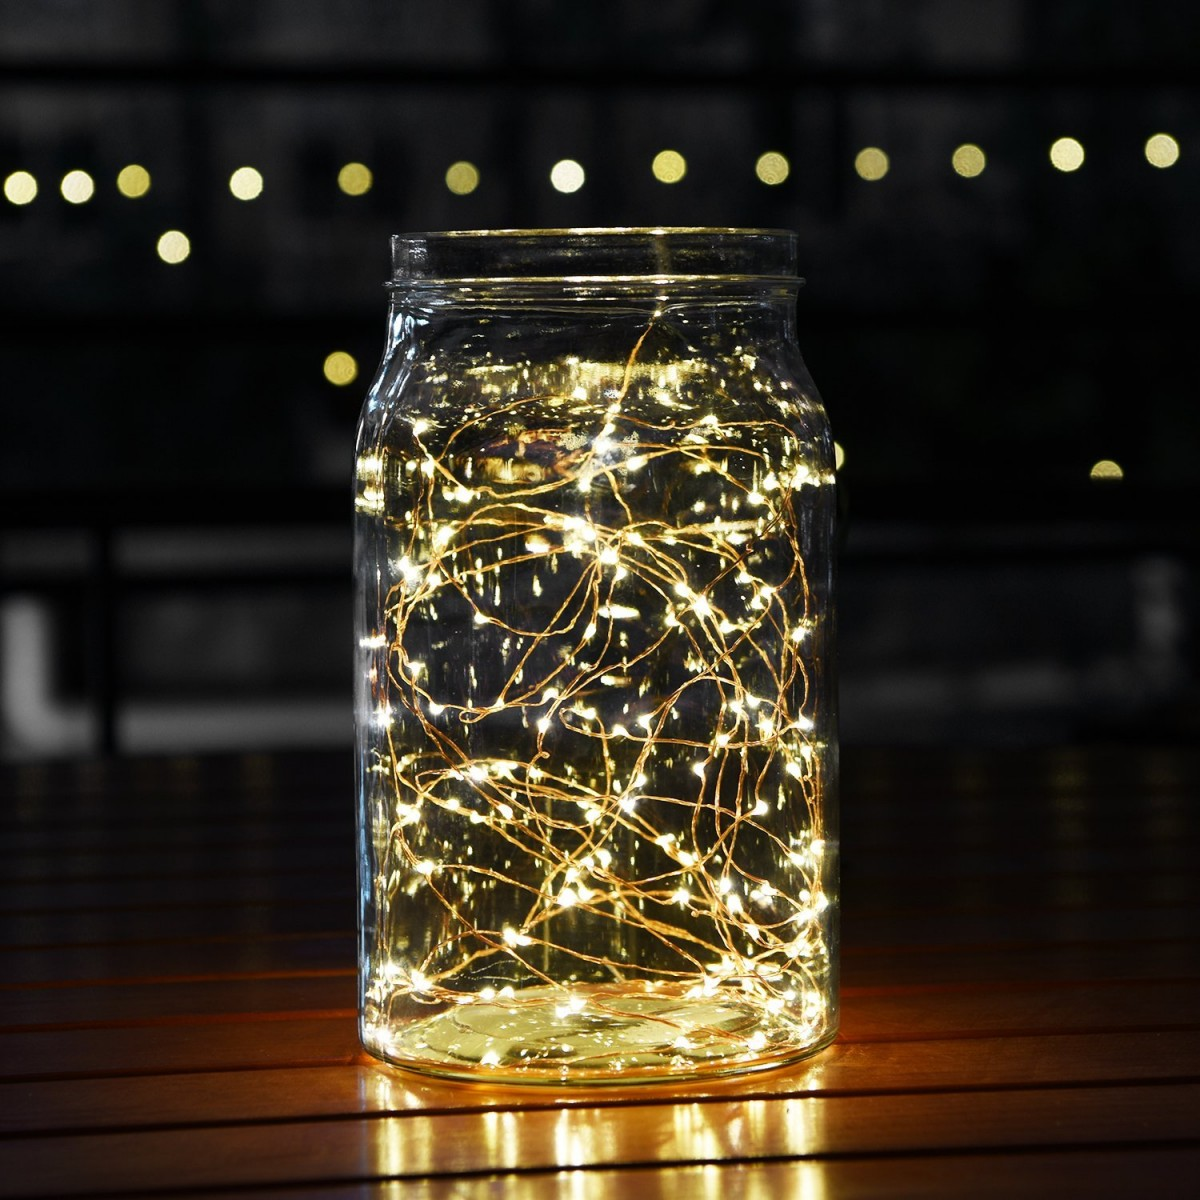 String Lights Cvs : Amazon: Set of 2 Waterproof Super Bright String Lights with Timer USD 1.99 - The Coupon Challenge